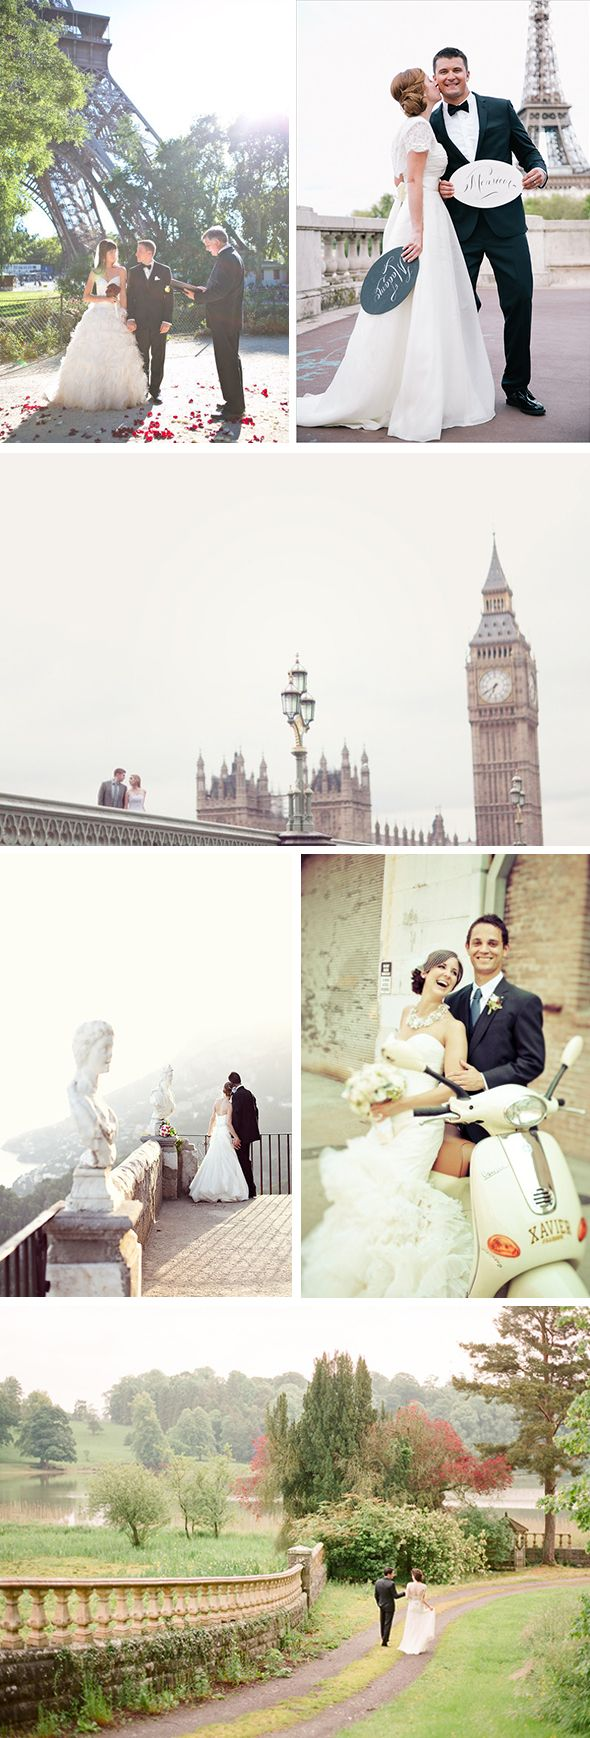 Best 25 wedding locations ideas on pinterest wedding for Destination wedding location ideas